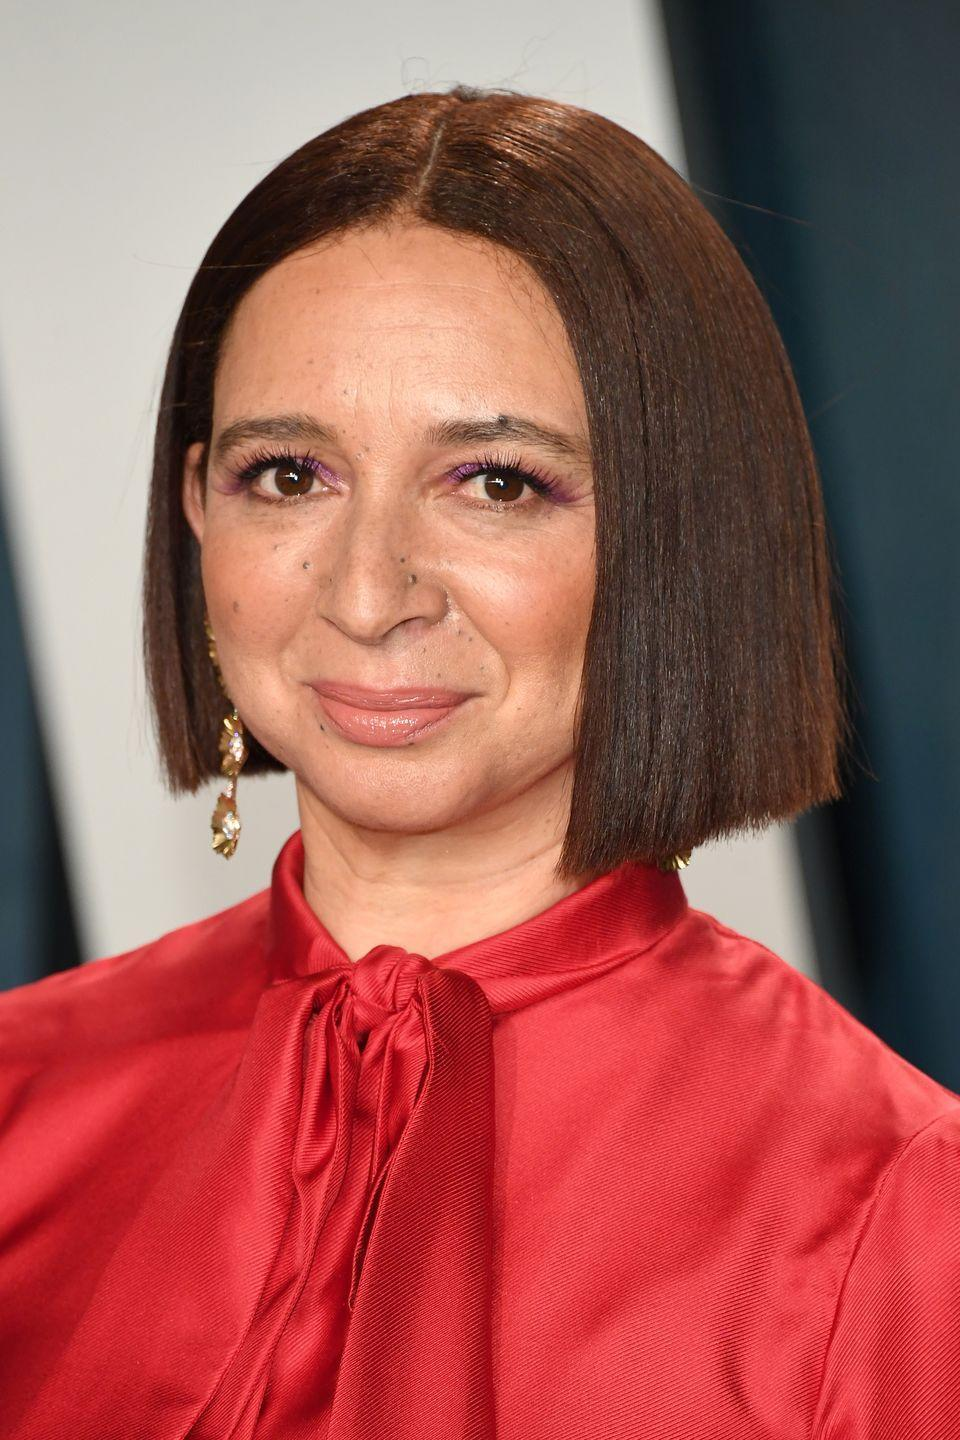 """<p>Thinking about chopping your hair, but don't want it to look too severe? Take a cue from <strong>Maya Rudolph</strong> and opt for the perfect shade of chestnut, which keeps an angular bob sweet. </p><p><a class=""""link rapid-noclick-resp"""" href=""""https://go.redirectingat.com?id=74968X1596630&url=https%3A%2F%2Fwww.ulta.com%2Flava-ceramic-hairstyling-iron%3FproductId%3DxlsImpprod17891025&sref=https%3A%2F%2Fwww.goodhousekeeping.com%2Fbeauty%2Fhair%2Fg34691983%2Fchestnut-hair-color-ideas%2F"""" rel=""""nofollow noopener"""" target=""""_blank"""" data-ylk=""""slk:SHOP FLAT IRON"""">SHOP FLAT IRON</a></p>"""